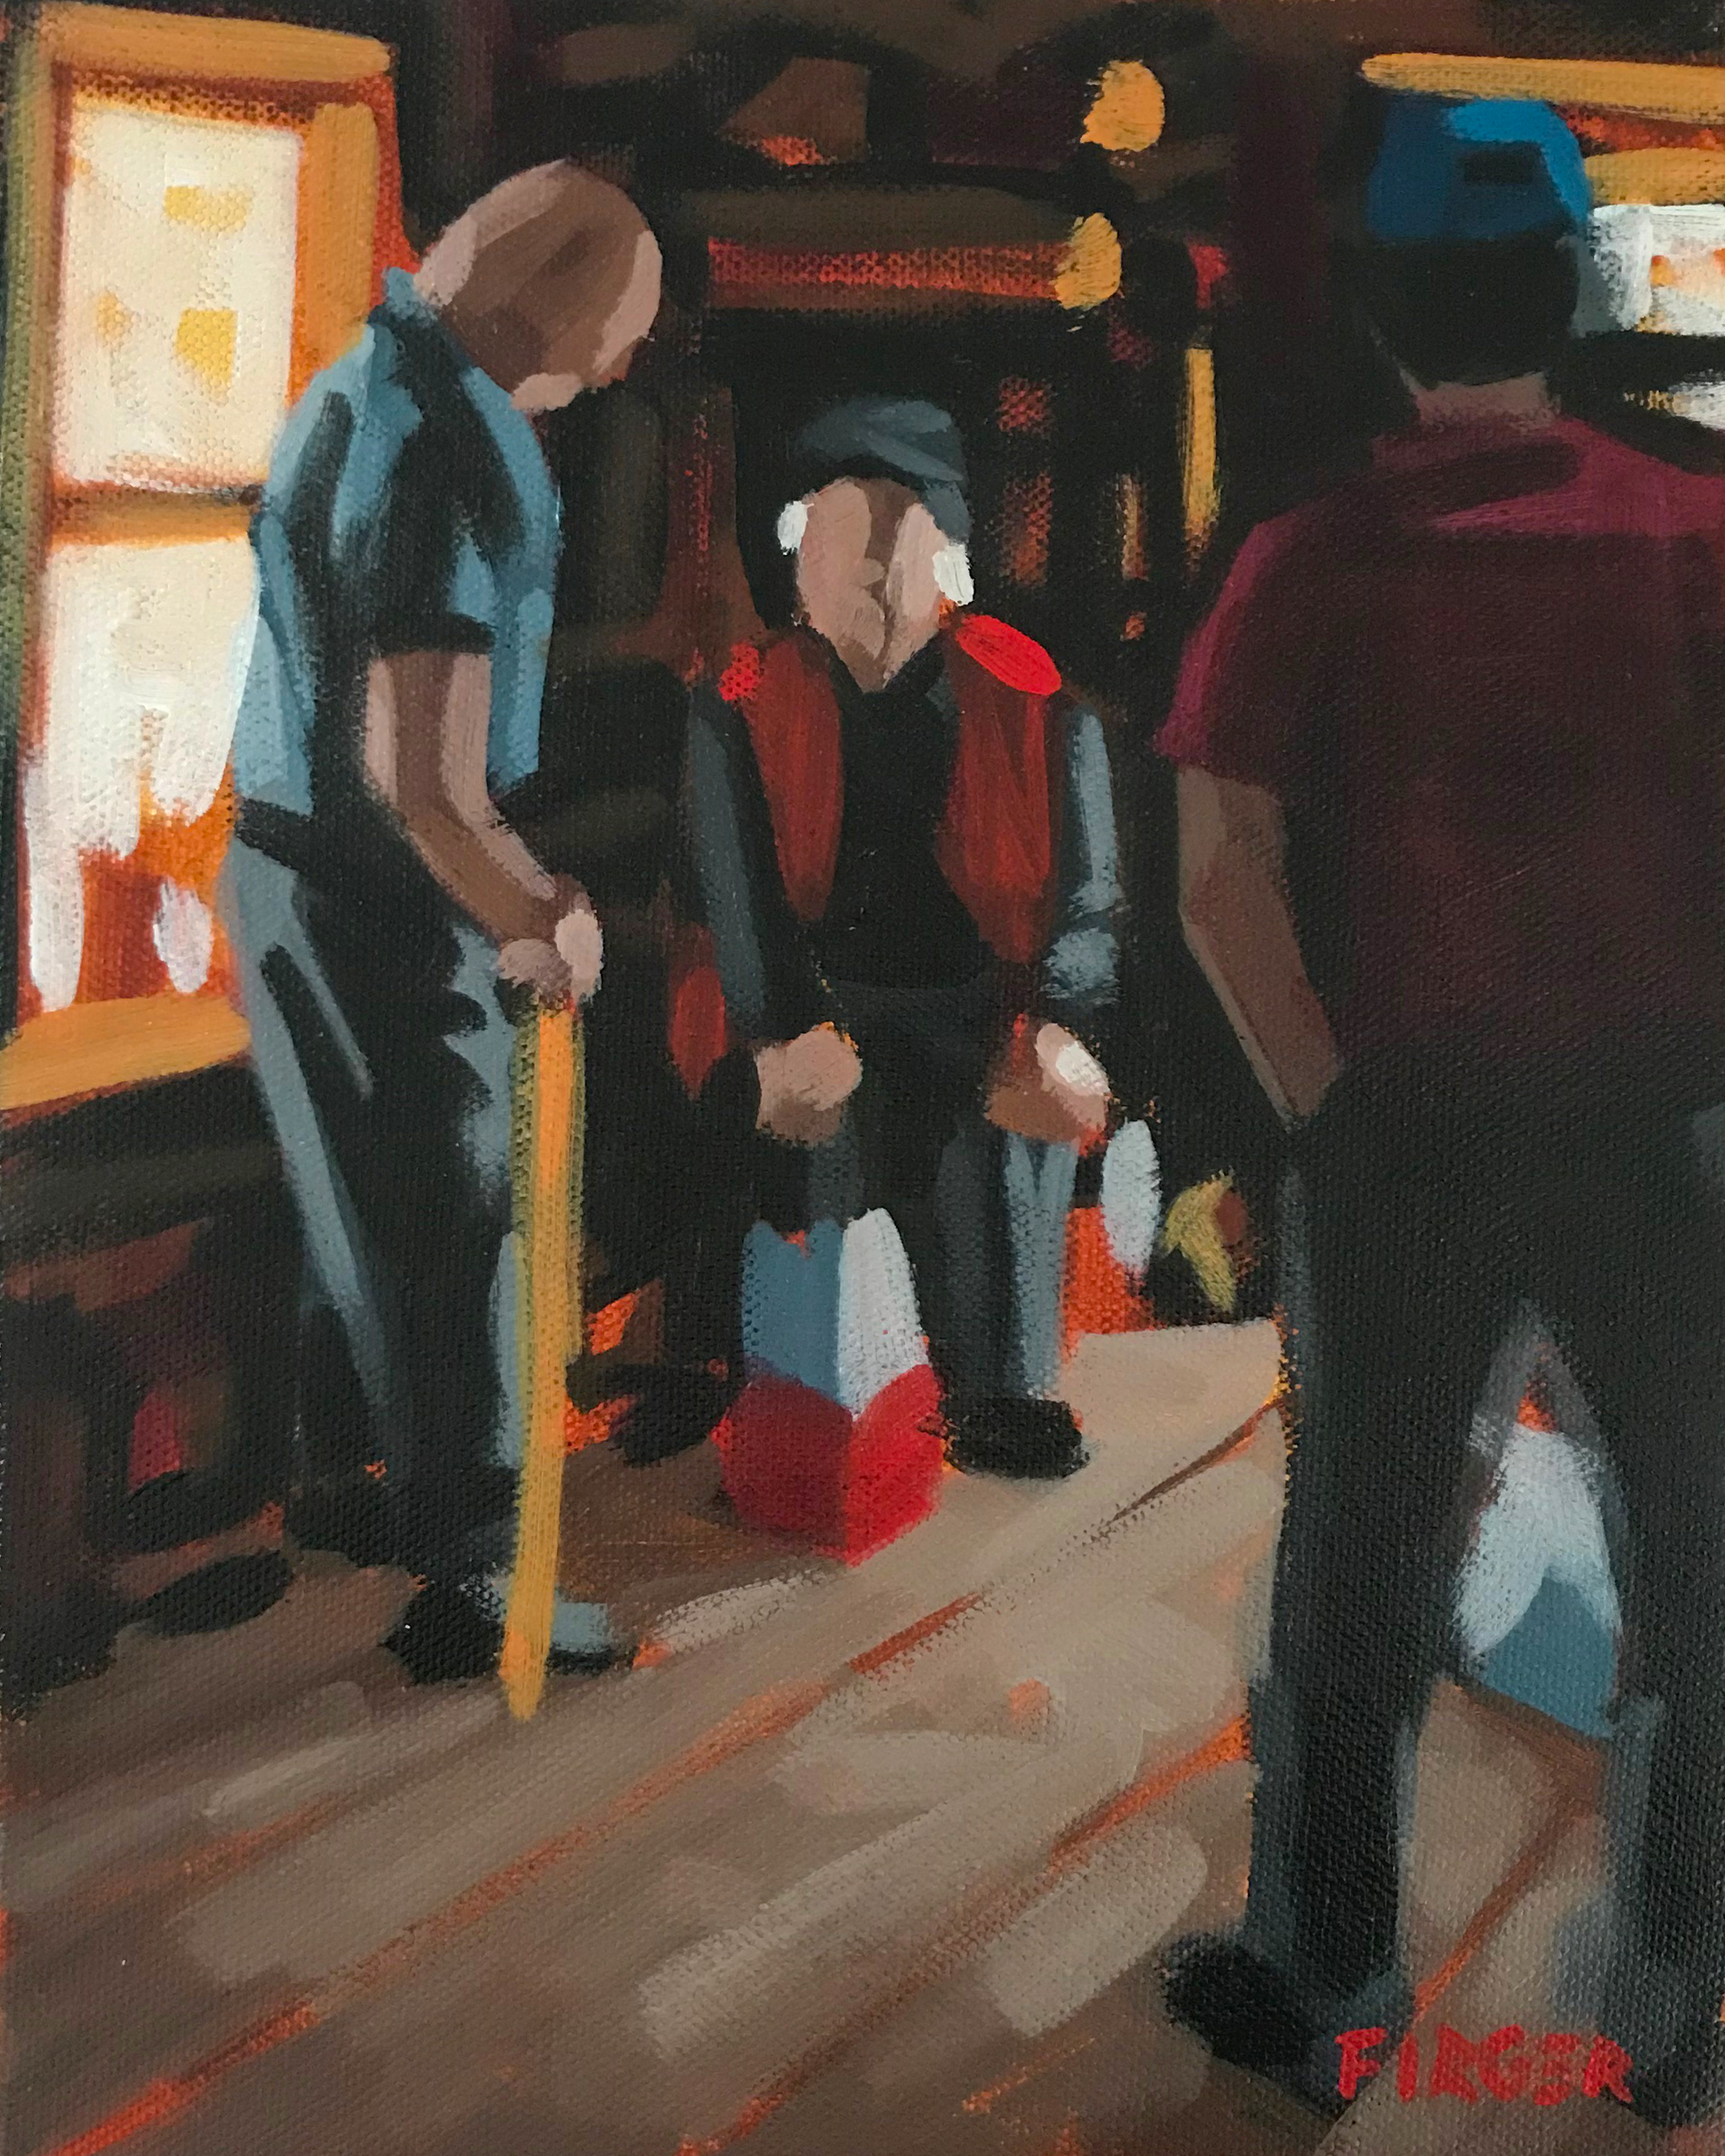 Fisherman's Story - 8 x 10, Acrylic on Canvas (SOLD)